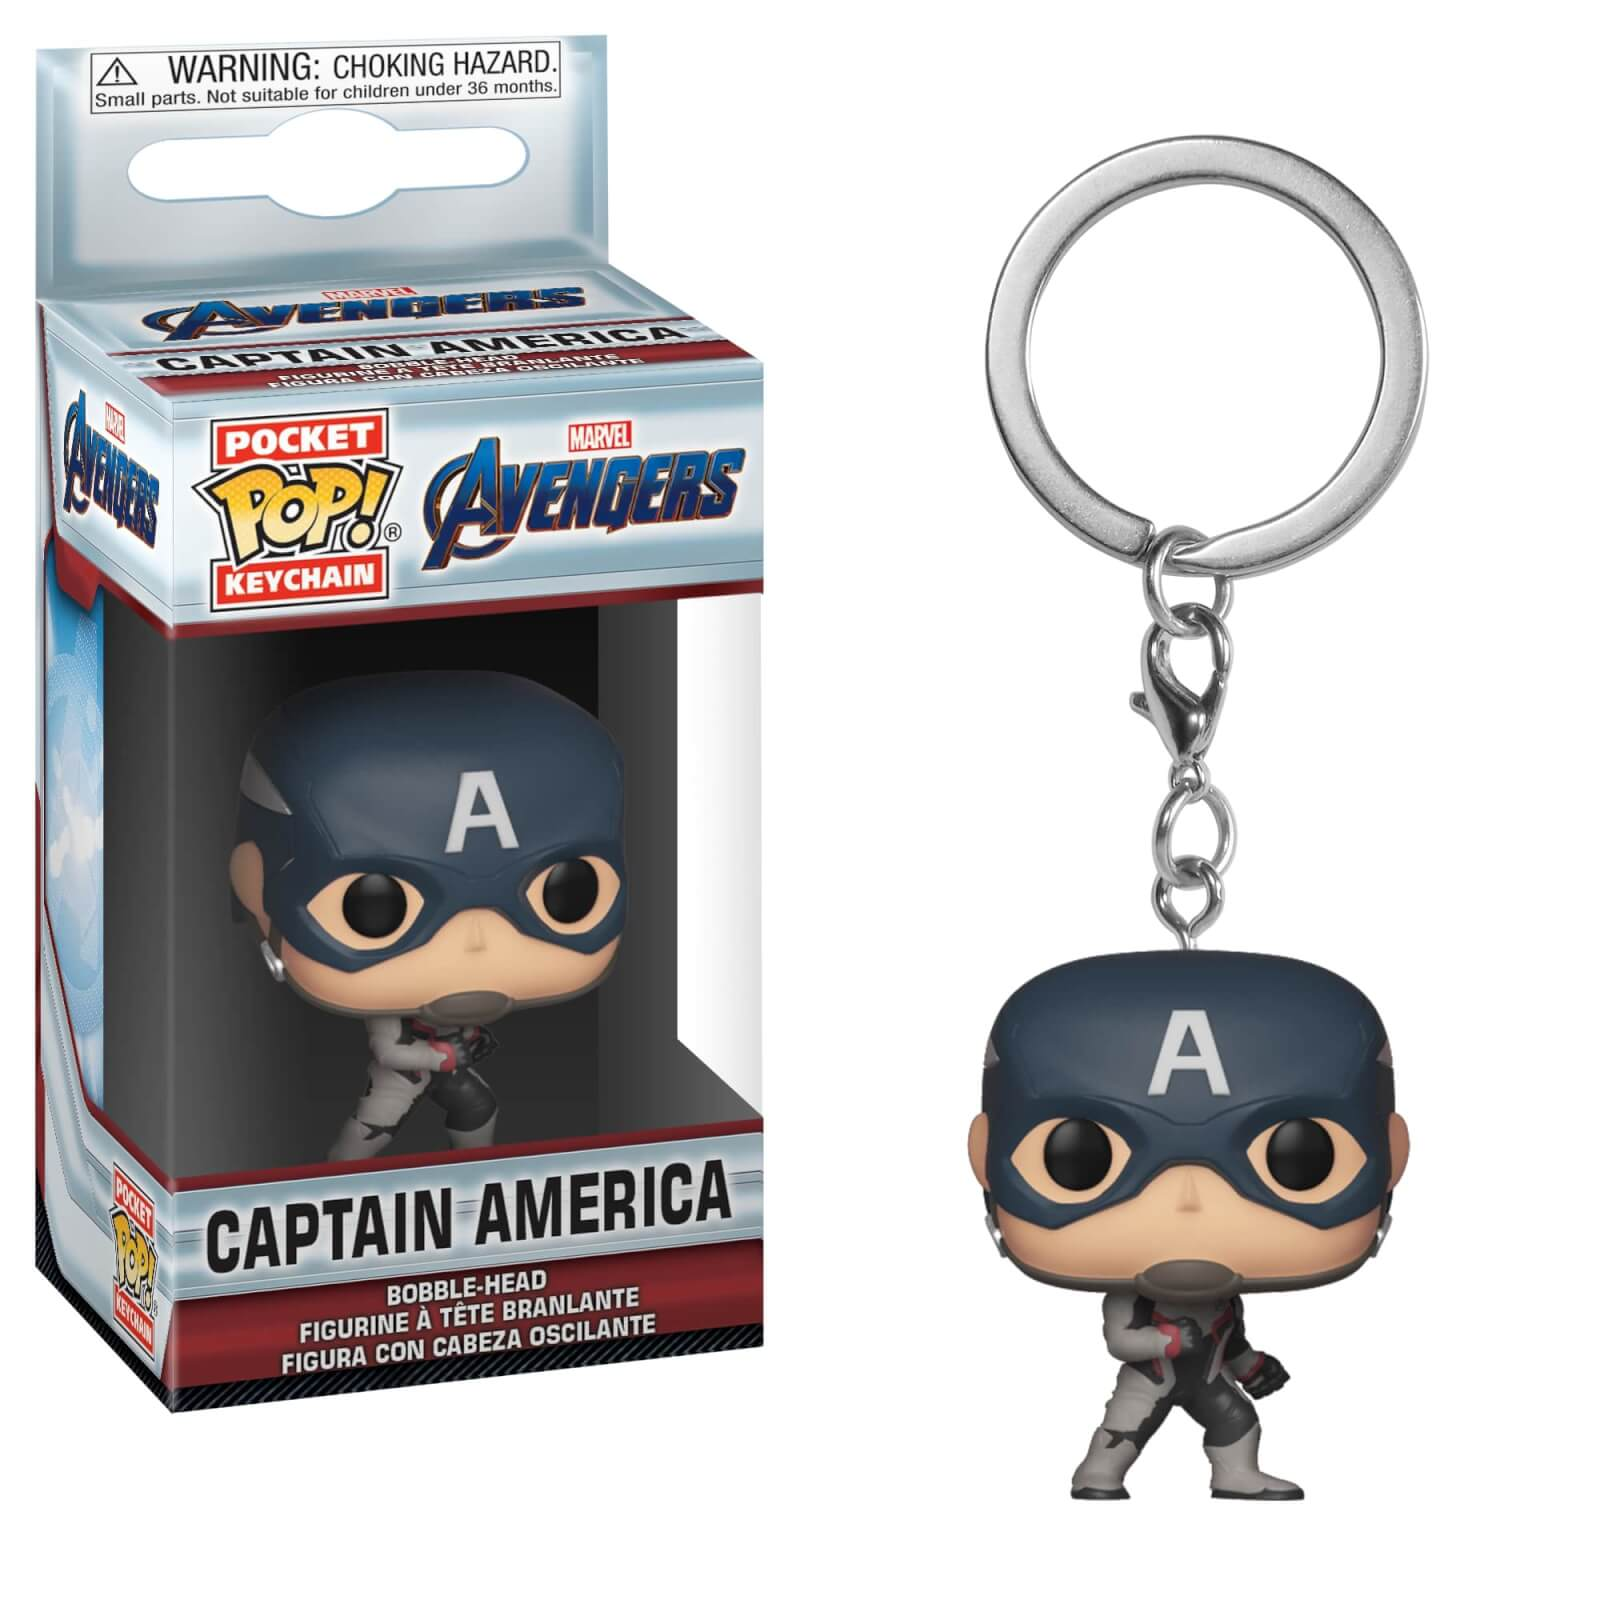 POCKET POP CAPTAIN AMERICA